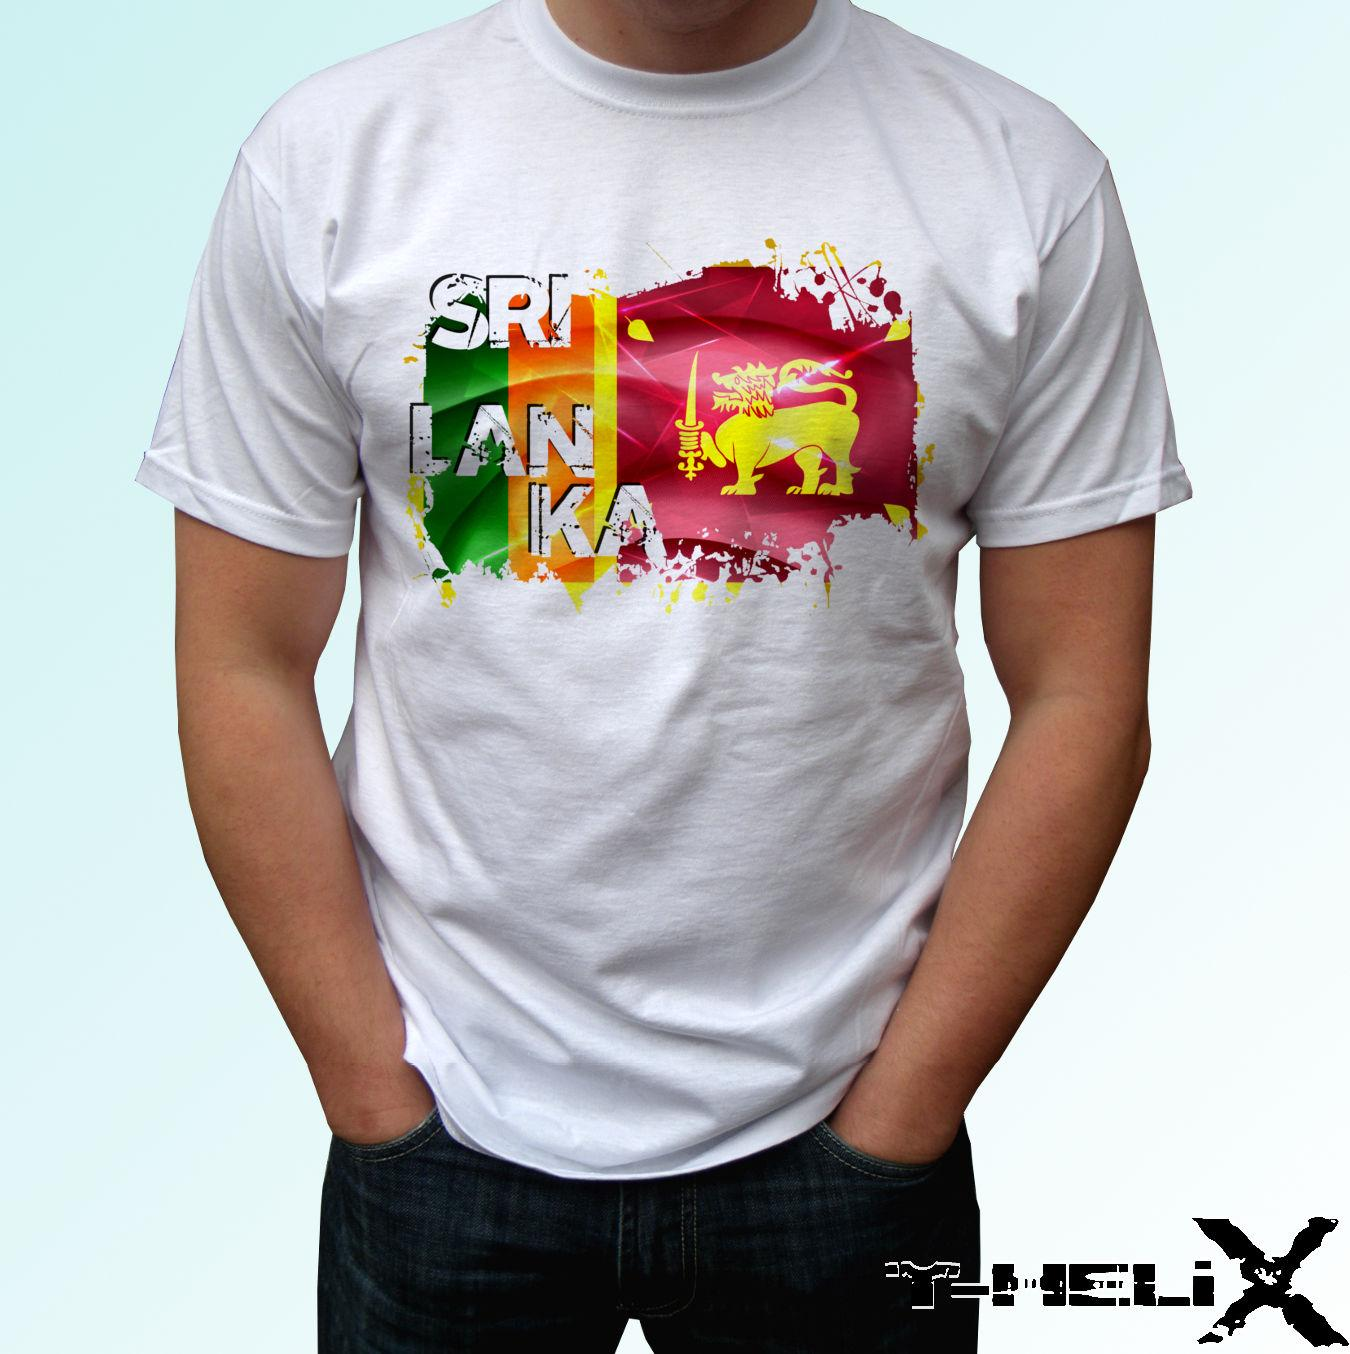 a2a9e1137d4 Sri Lanka Flag White T Shirt Top Country Design Funny Unisex Casual Cool  Team Shirts Crazy Shirt Designs From Afterlightclothing